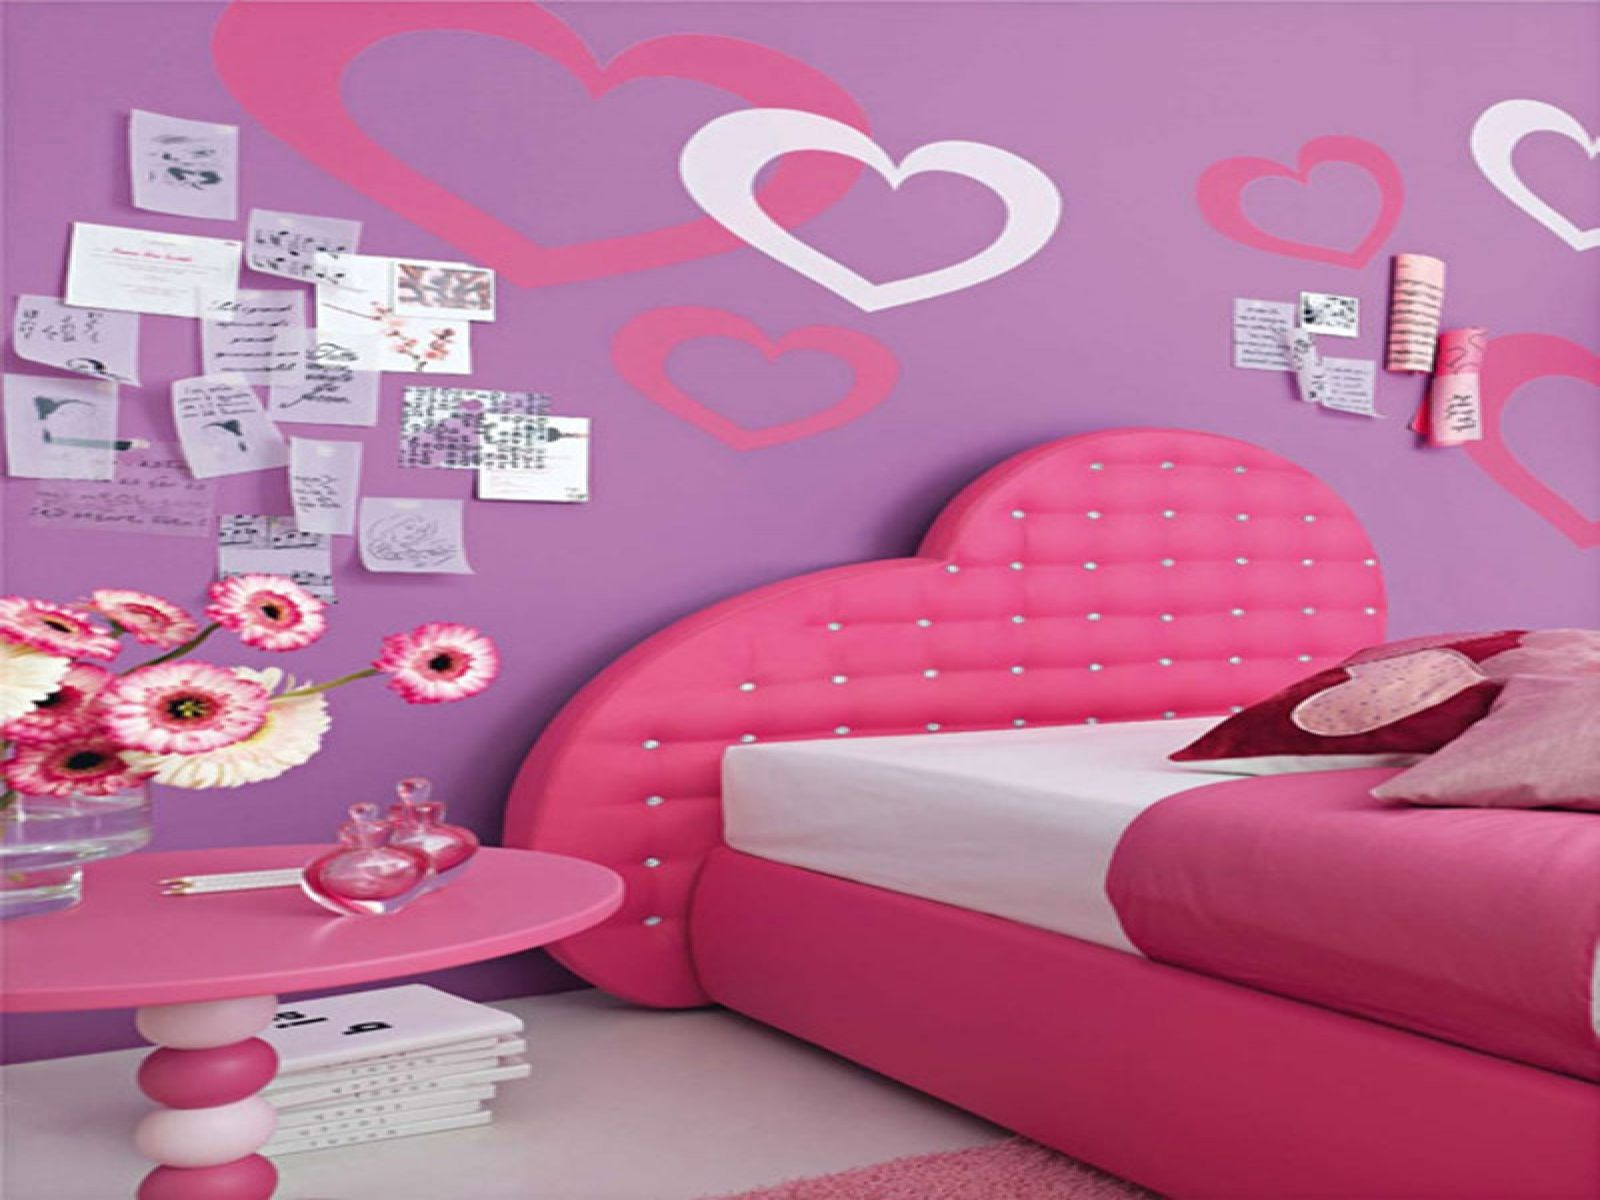 Bedroom wall decoration for kids - Bedroom Kids Bedroom Wall Decor As Decor For Kids Bedroom By Making A Impressive Home Remodeling Or Renovation Of Your Bedroom 4